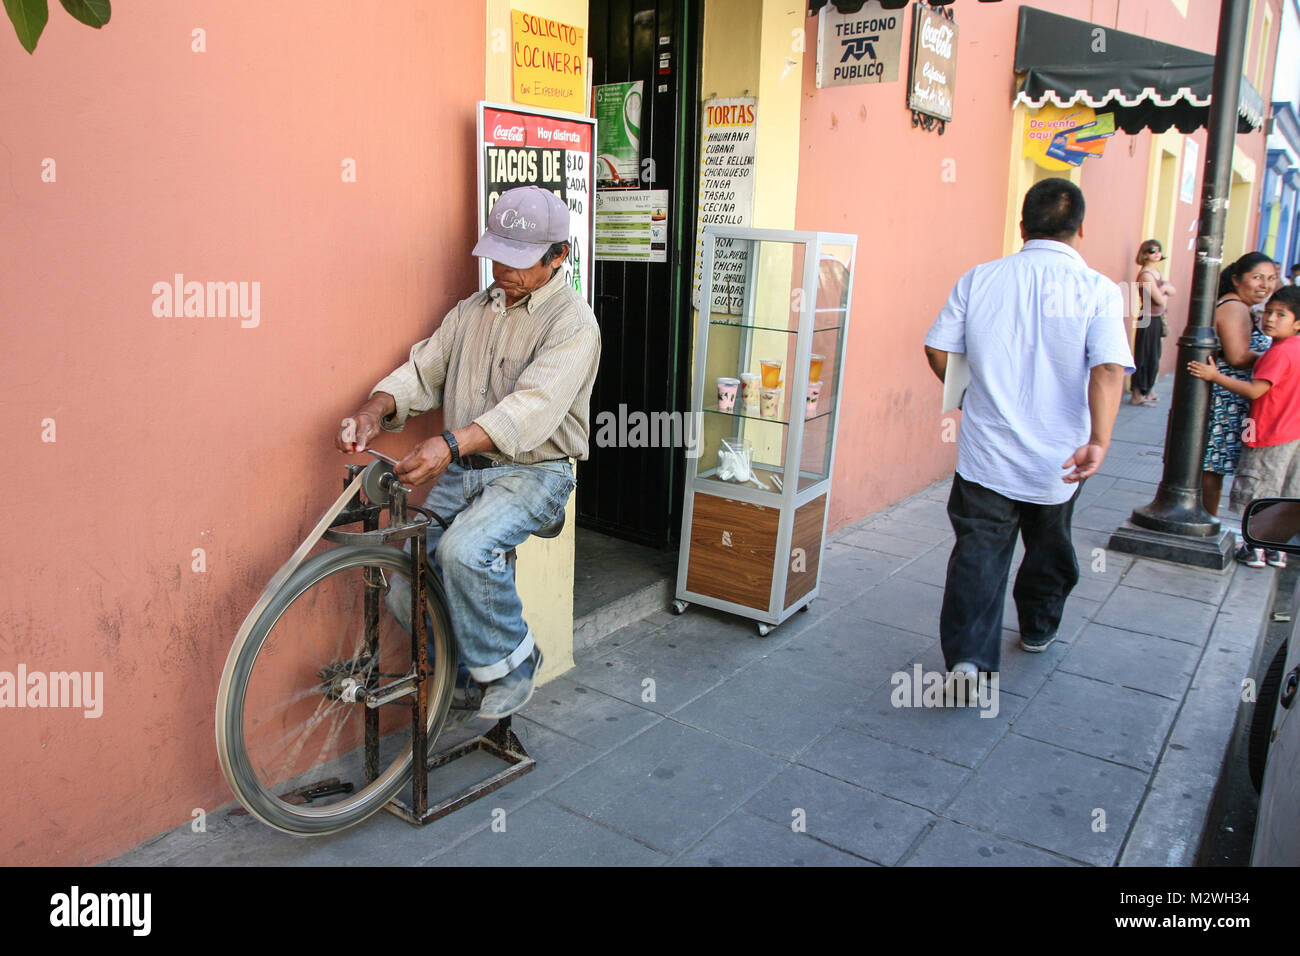 Oaxaca, Mexico - March 7th, 2012: Man grinding knives on a street in  Oaxaca, Mexico Stock Photo